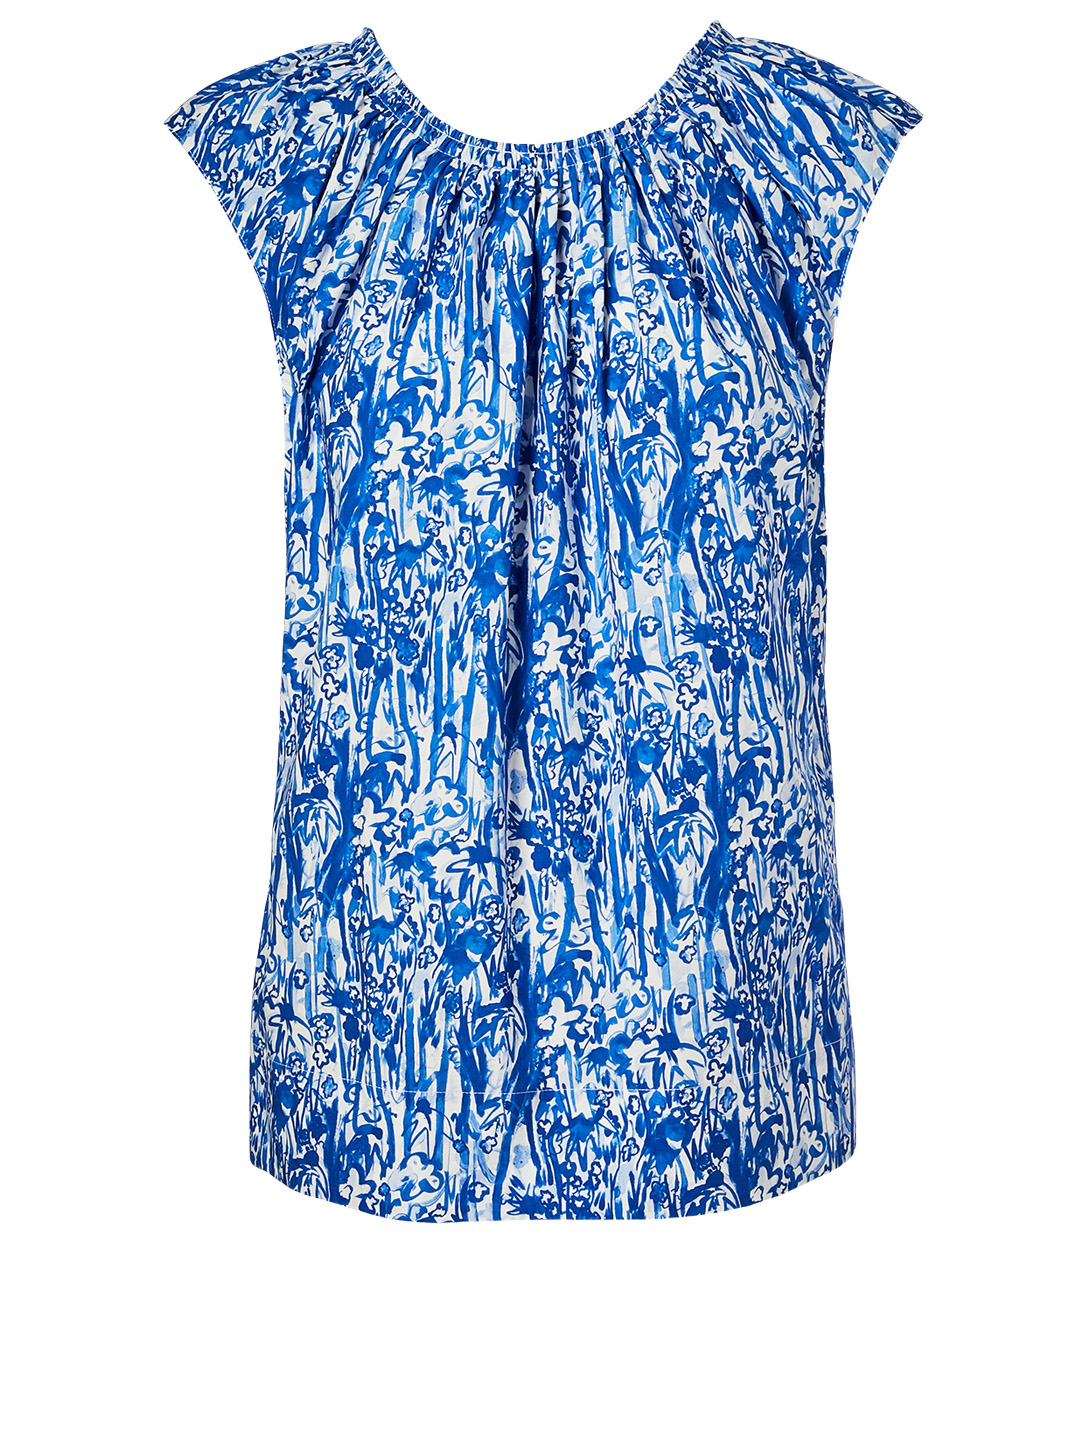 MARNI Cotton Sleeveless Blouse In Floral Print Women's Blue